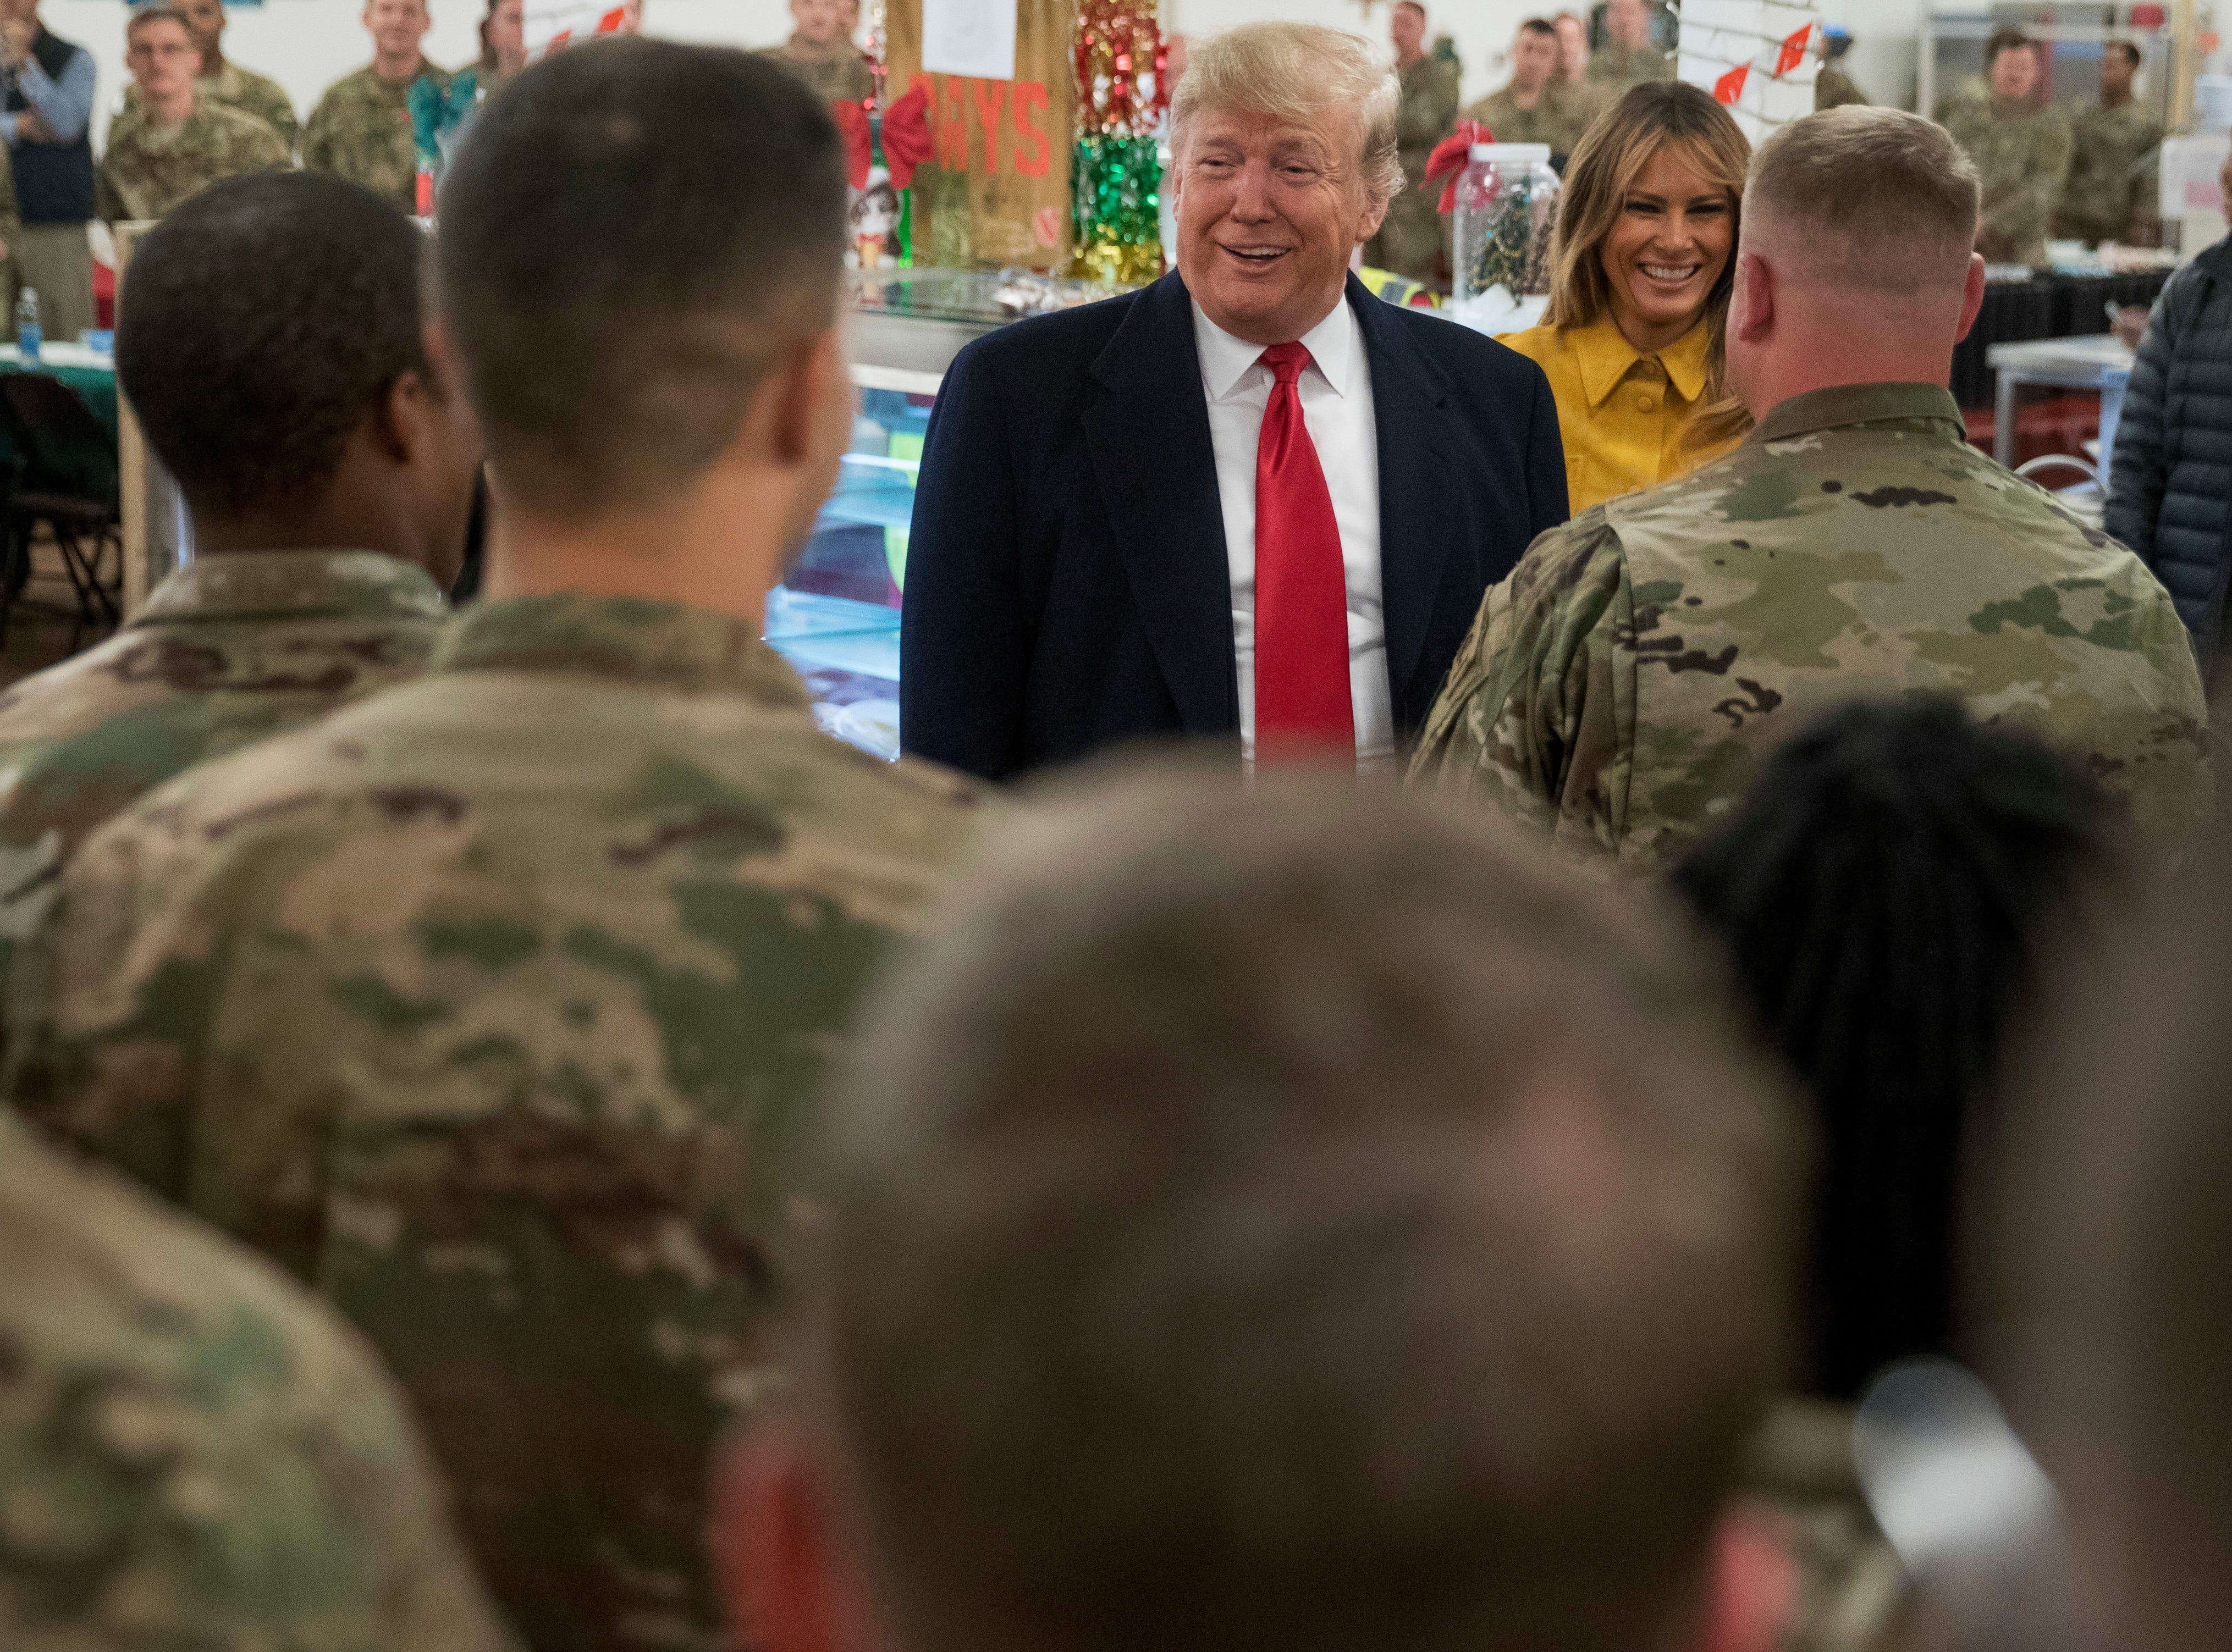 President Donald Trump and first lady Melania Trump visit with members of the military at a dining hall at Al Asad Air Base, Iraq, Wednesday, Dec. 26, 2018. (AP Photo/Andrew Harnik) ORG XMIT: IRQA132